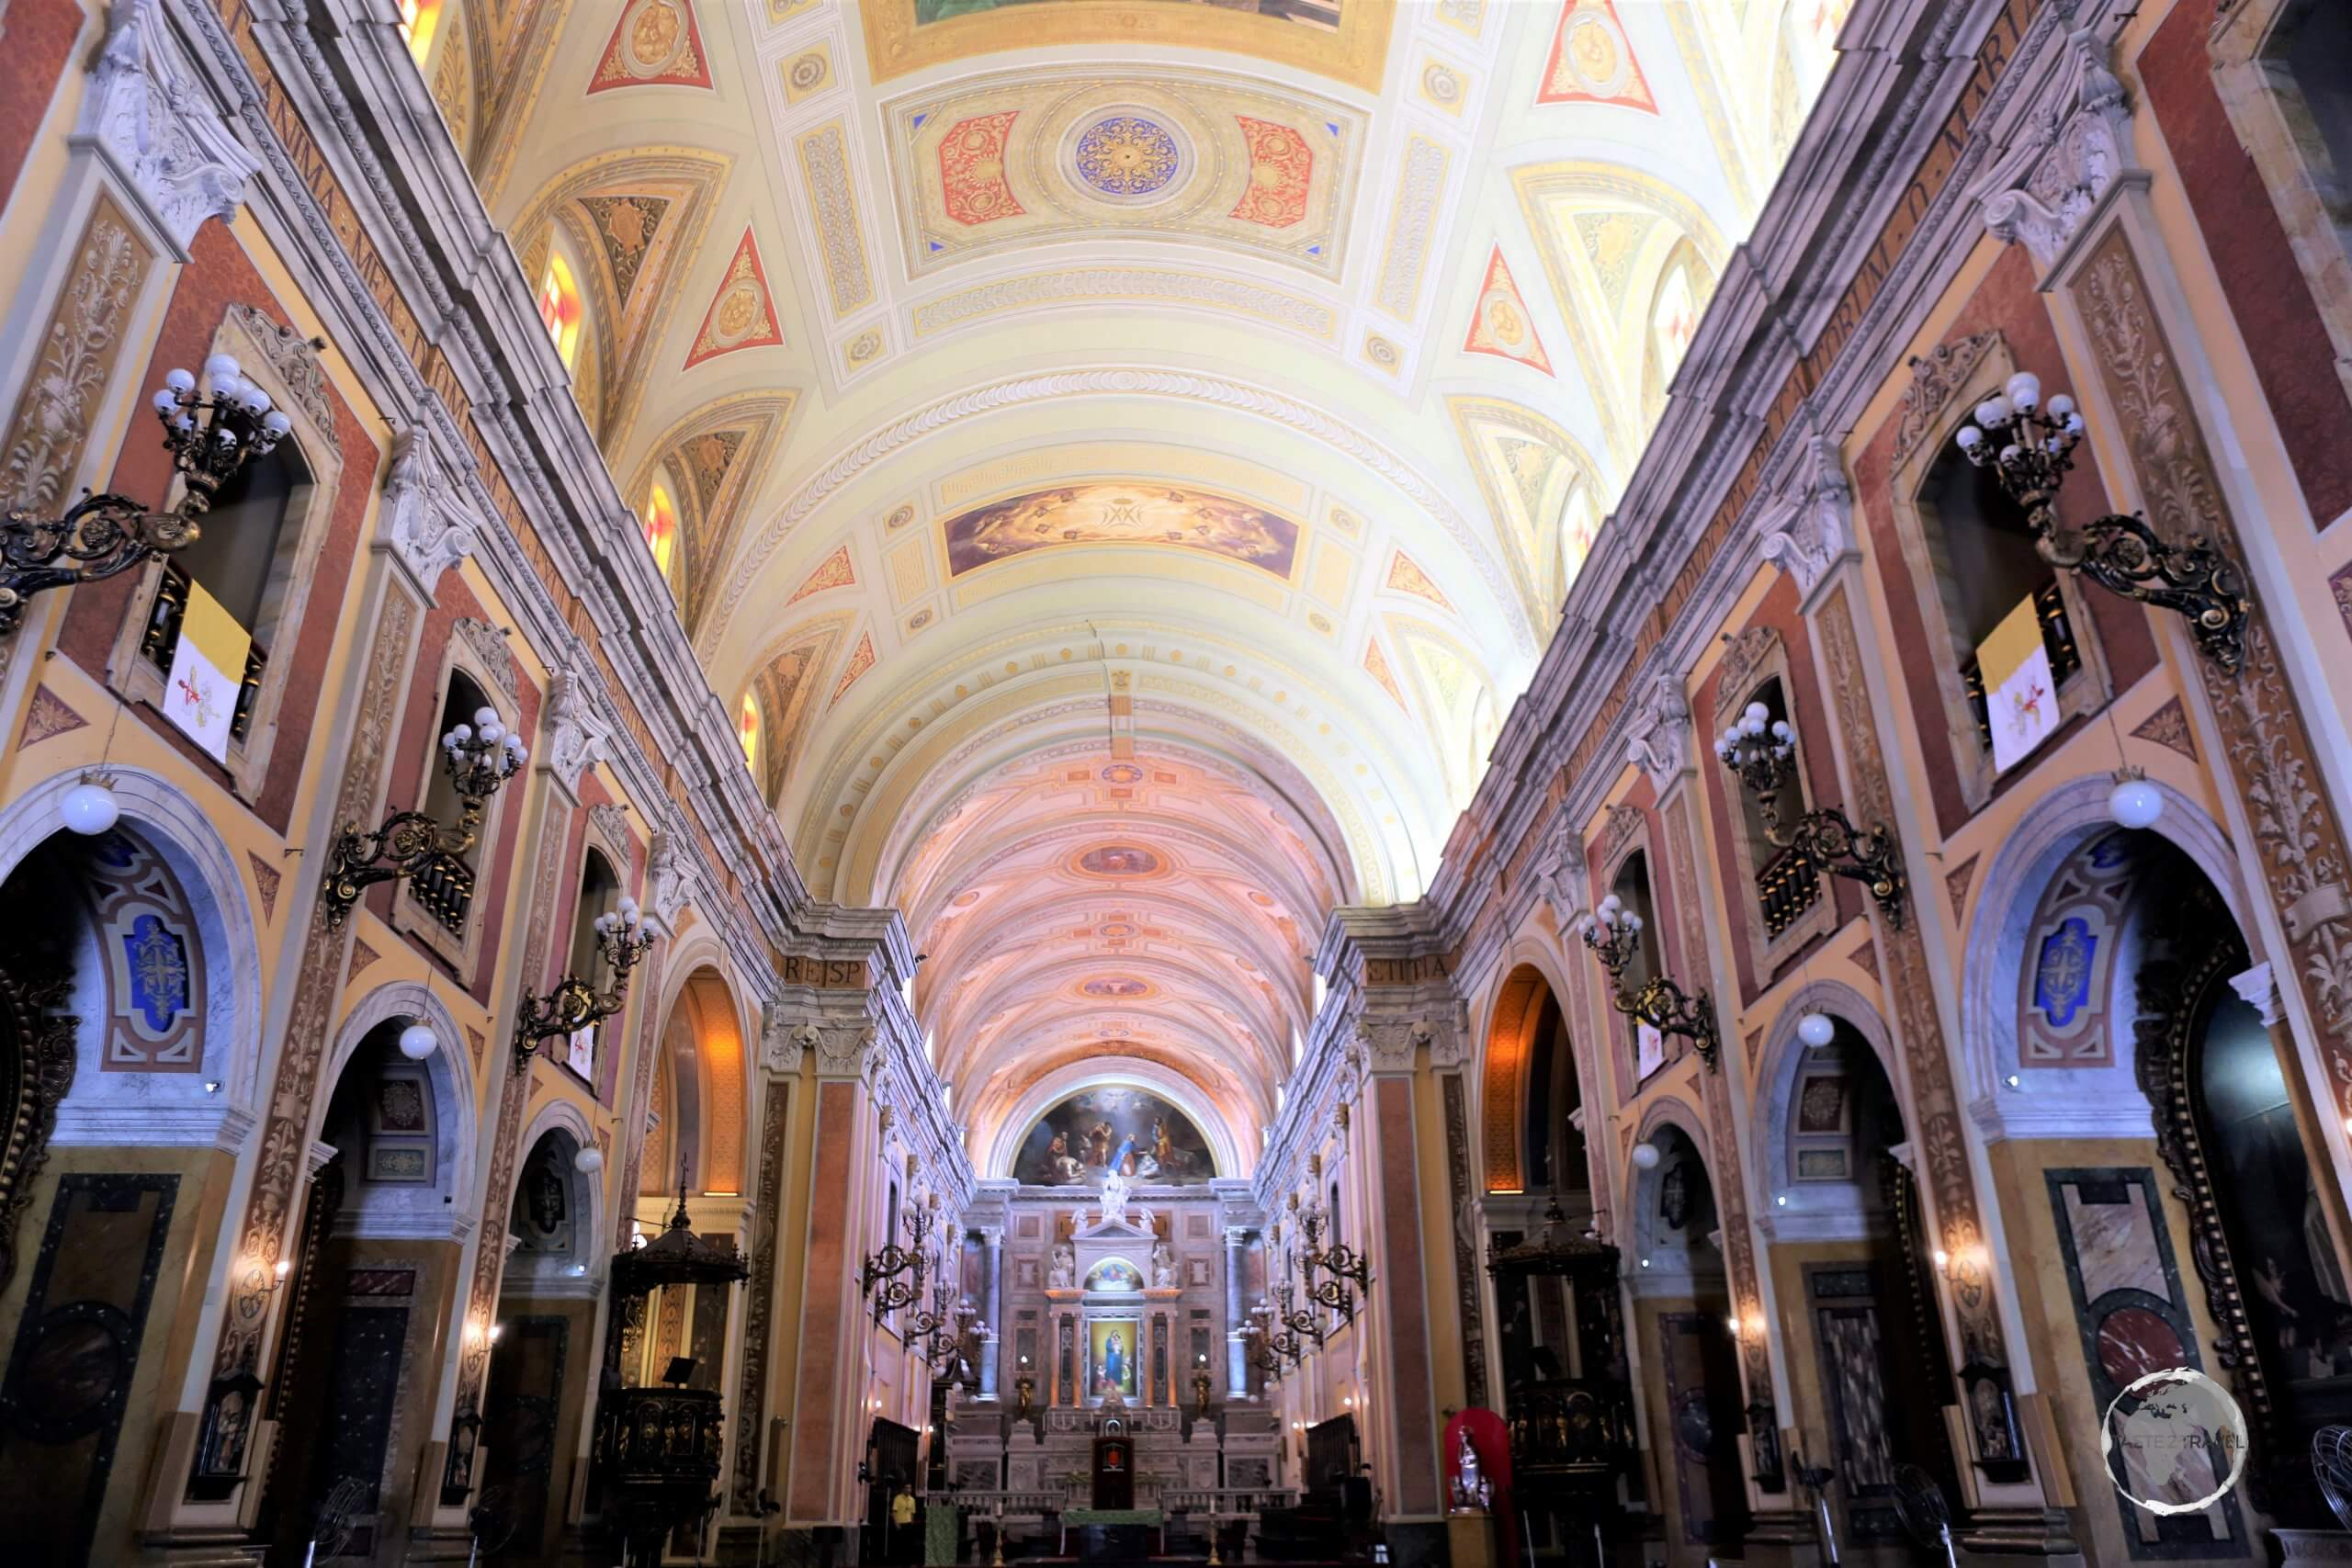 The interior of Our Lady of Grace Cathedral (also called Belém Cathedral), which is located in the old quarter of the city in Belém in Brazil.